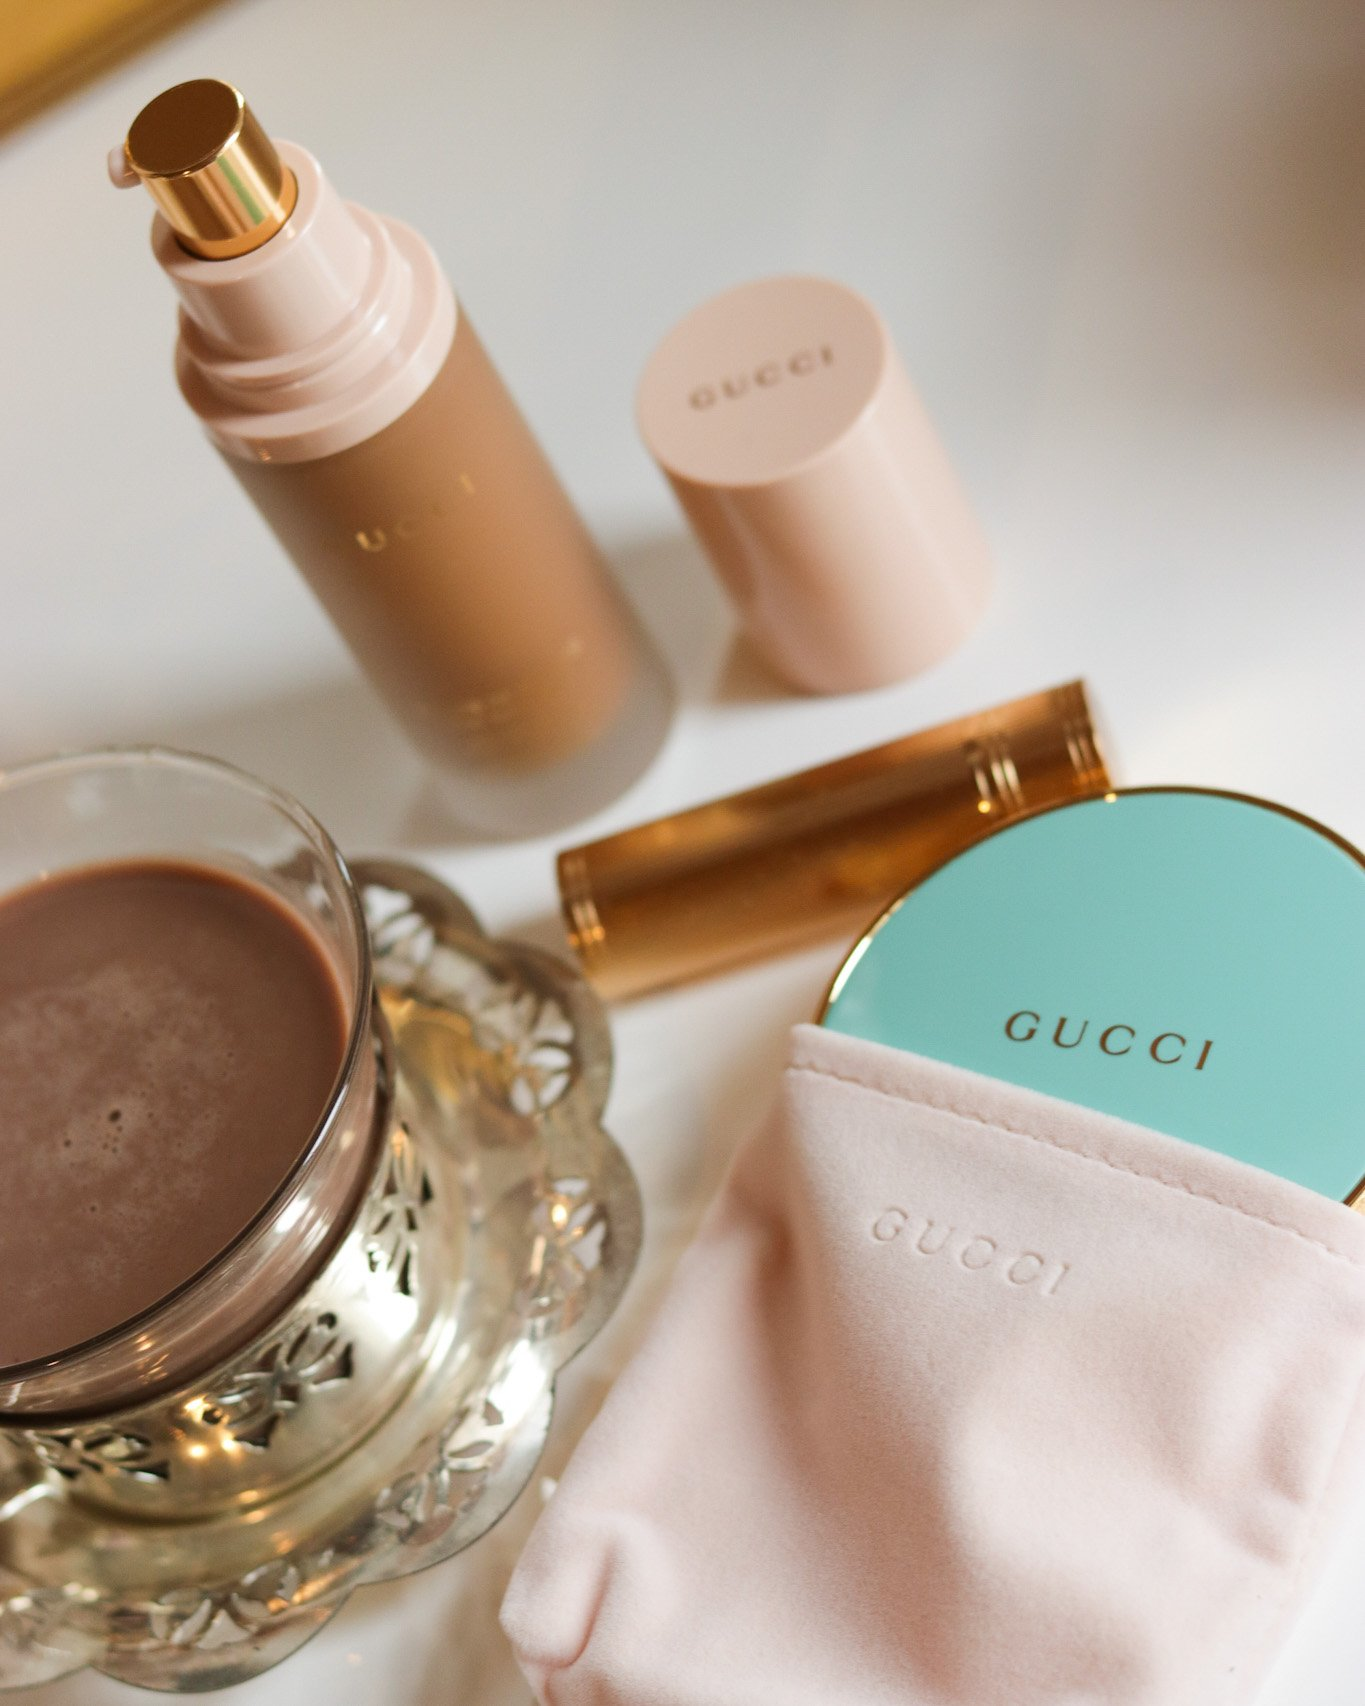 Gucci Beauty Foundation En Make-up Review